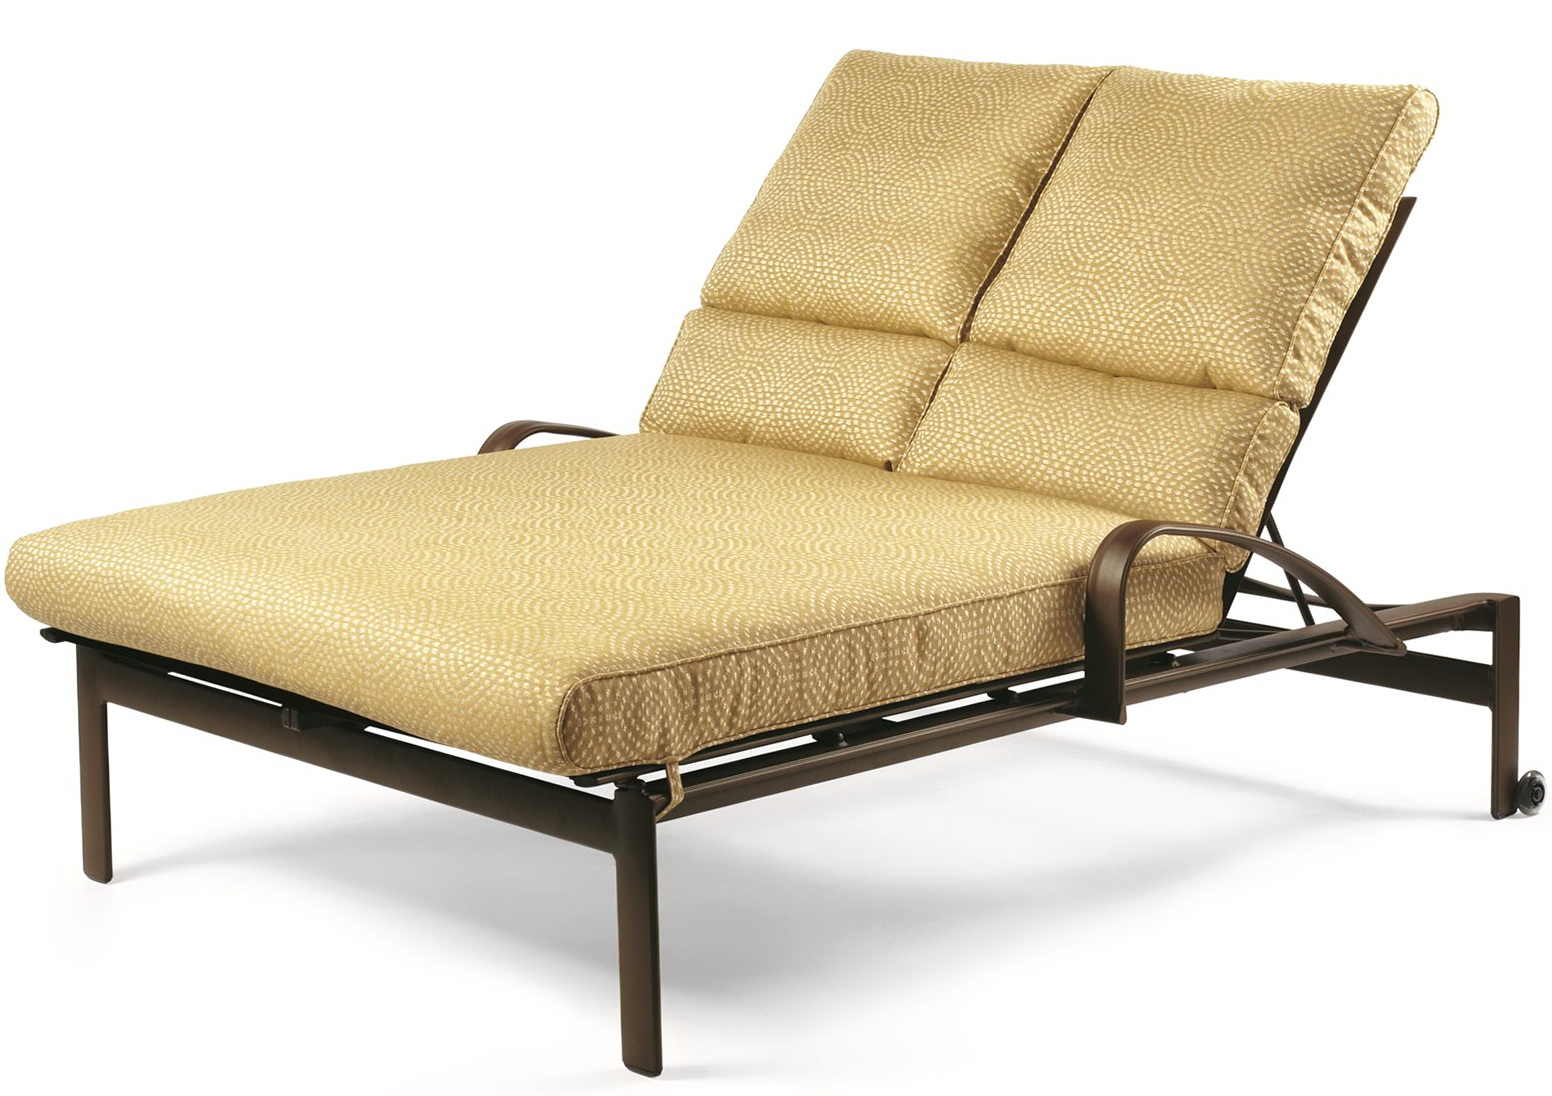 Double Chaise Lounge Cushions Sale